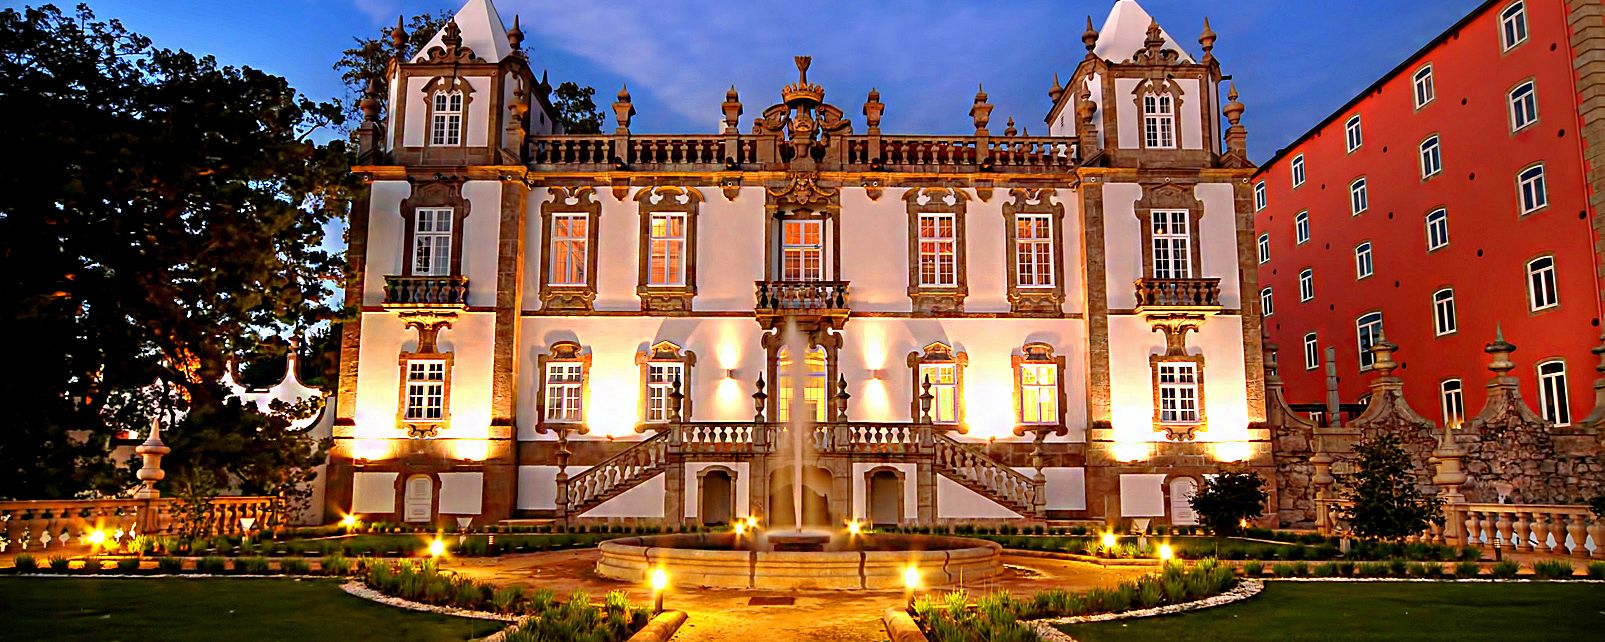 Hôtel Pousada Do Porto - Palácio Do Freixo